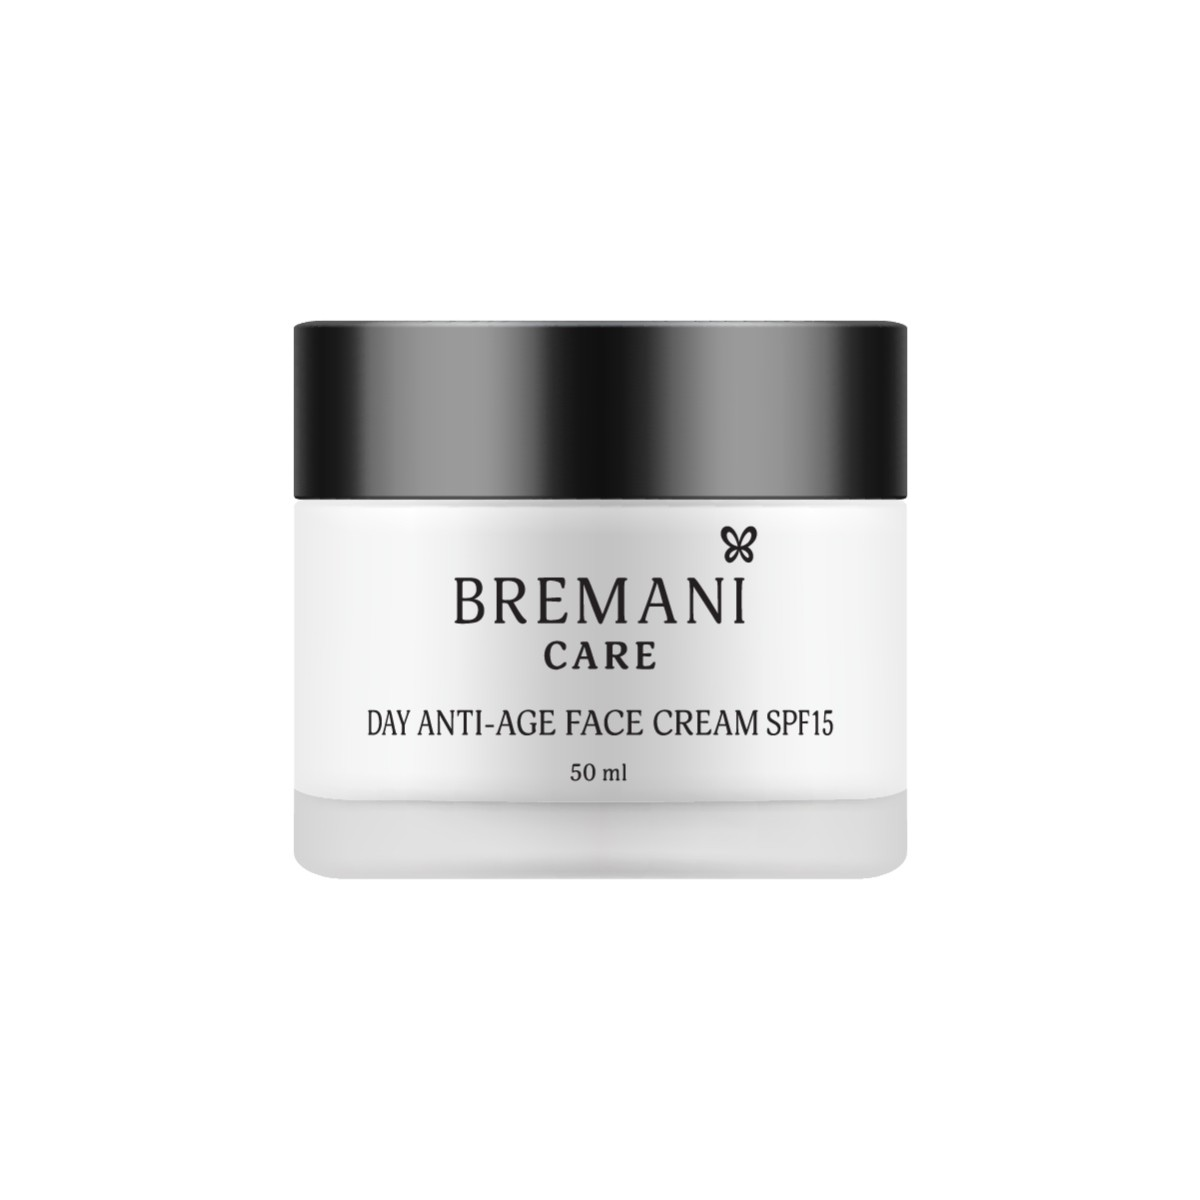 Day Anti-age Face Cream SPF 15 40+